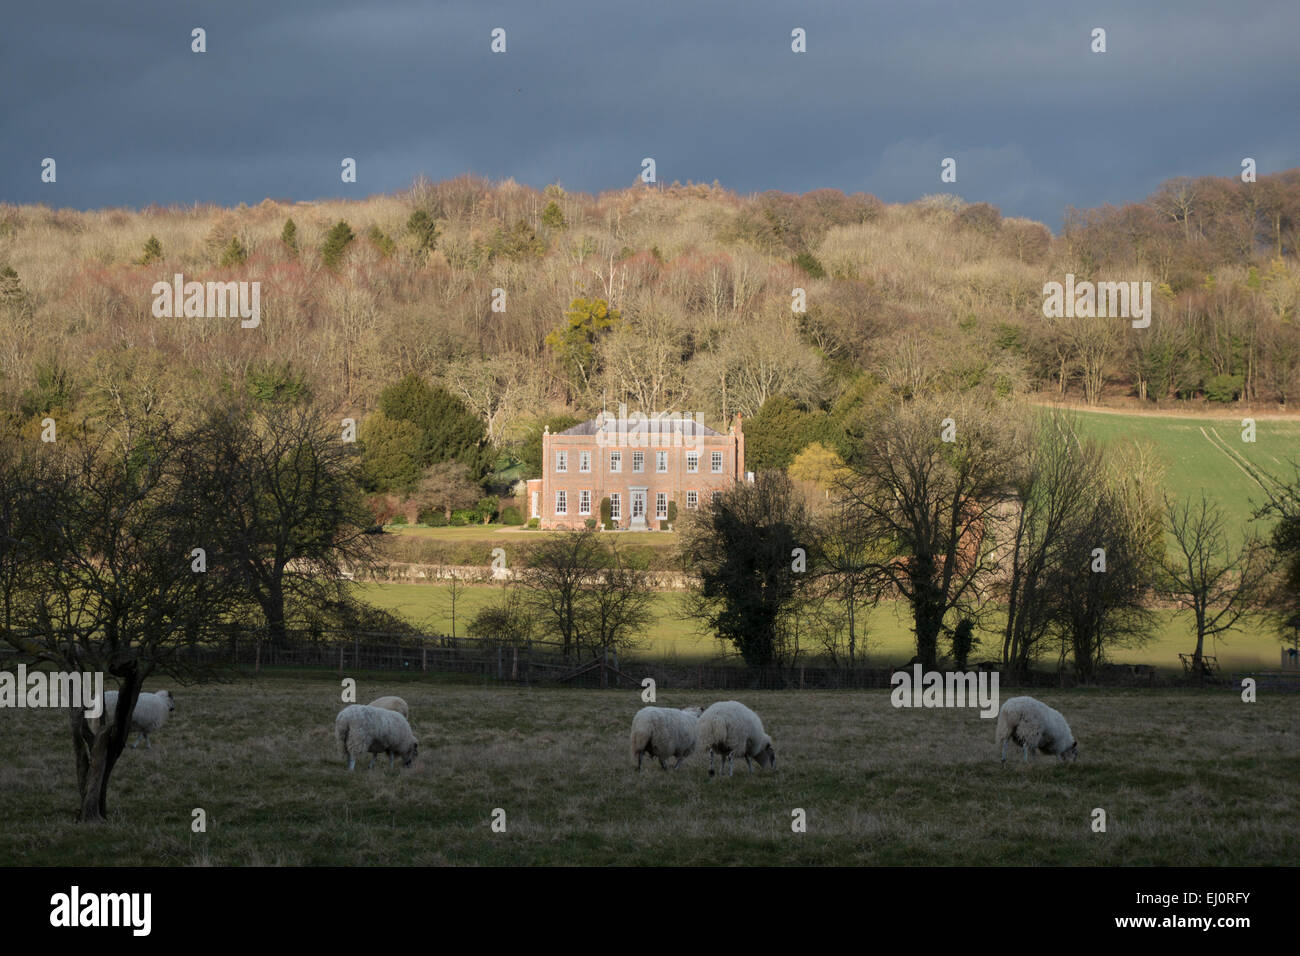 A view  of an imposing house near the village of Hambleden Buckinghamshire England - Stock Image